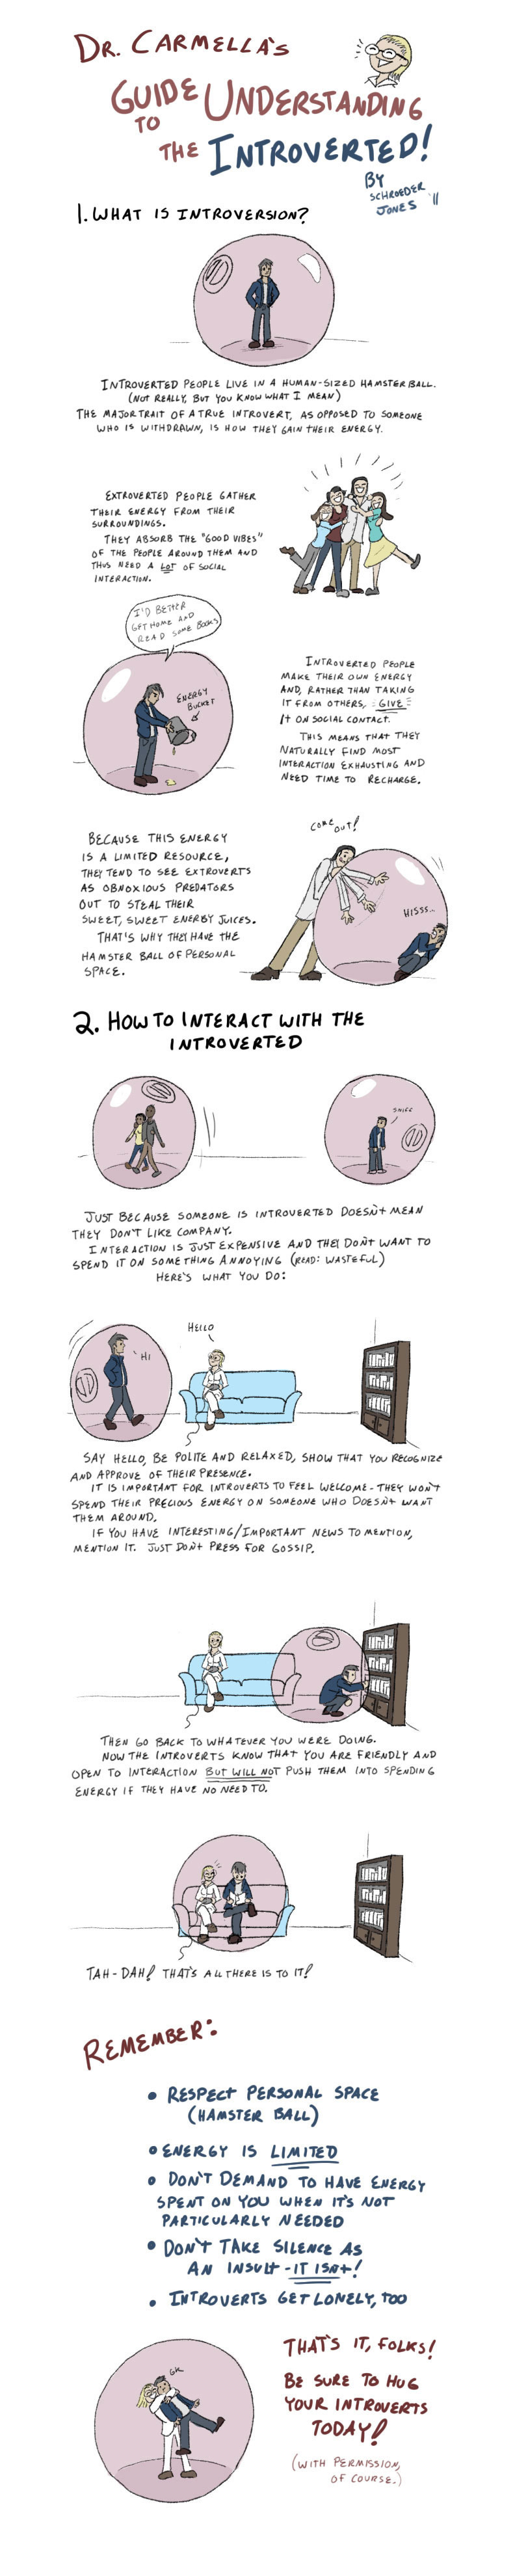 interacting with an introvert infographic